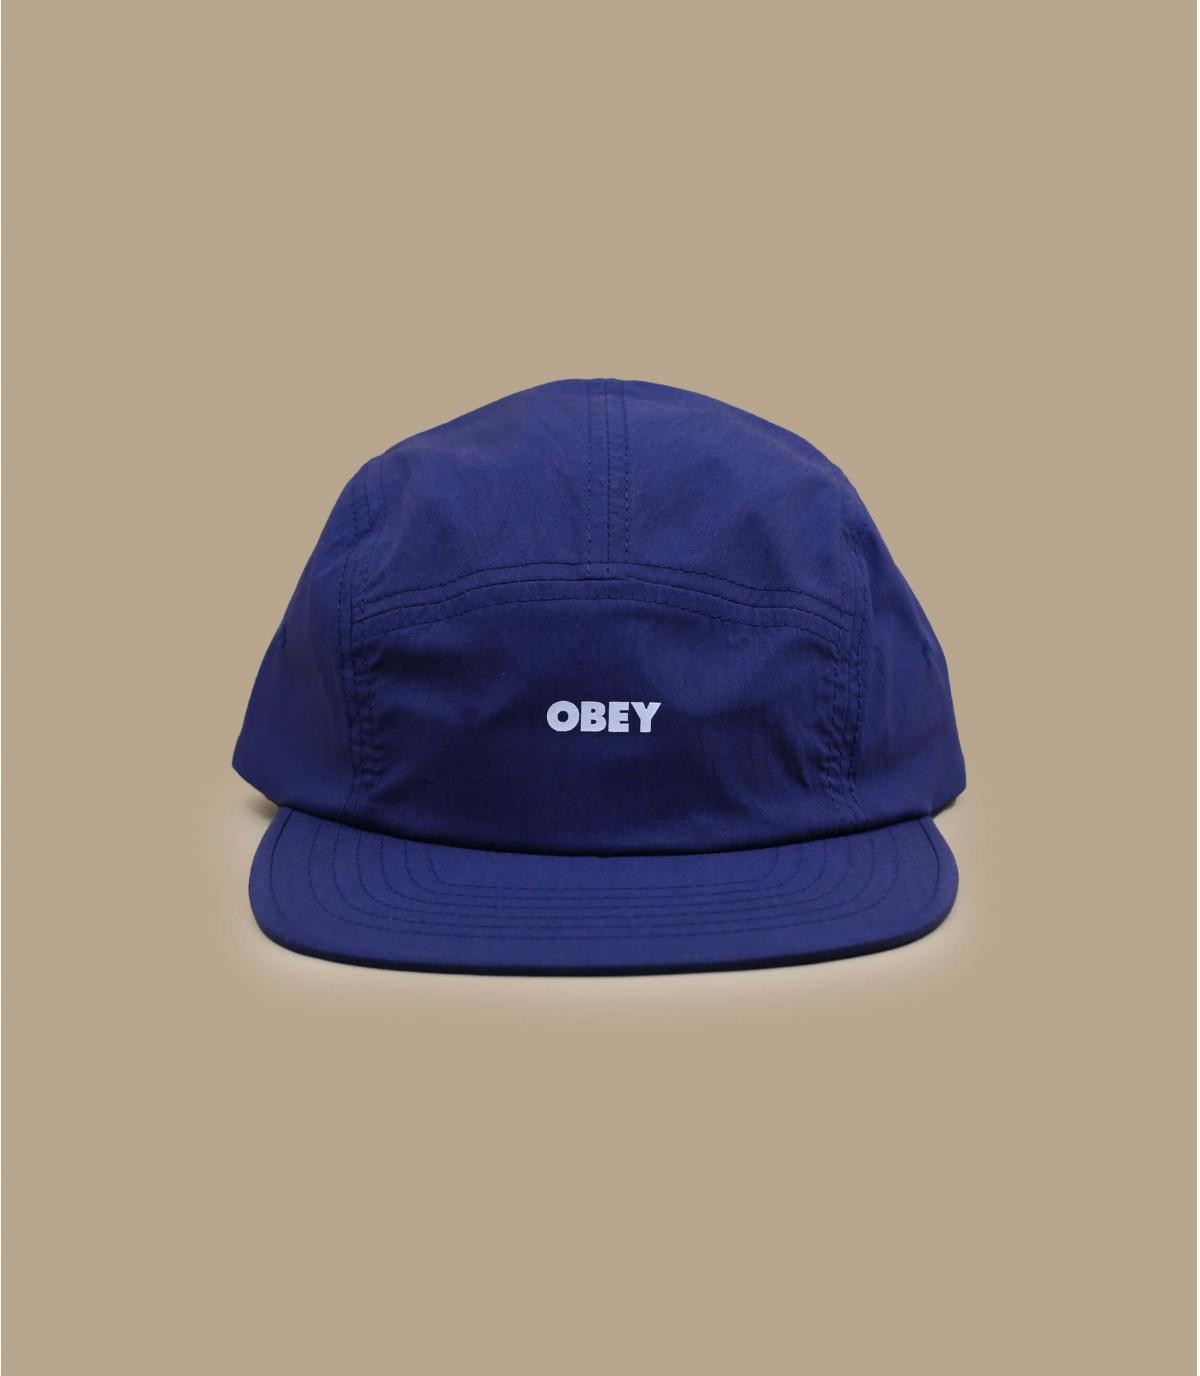 Obey navy blue 5 panel